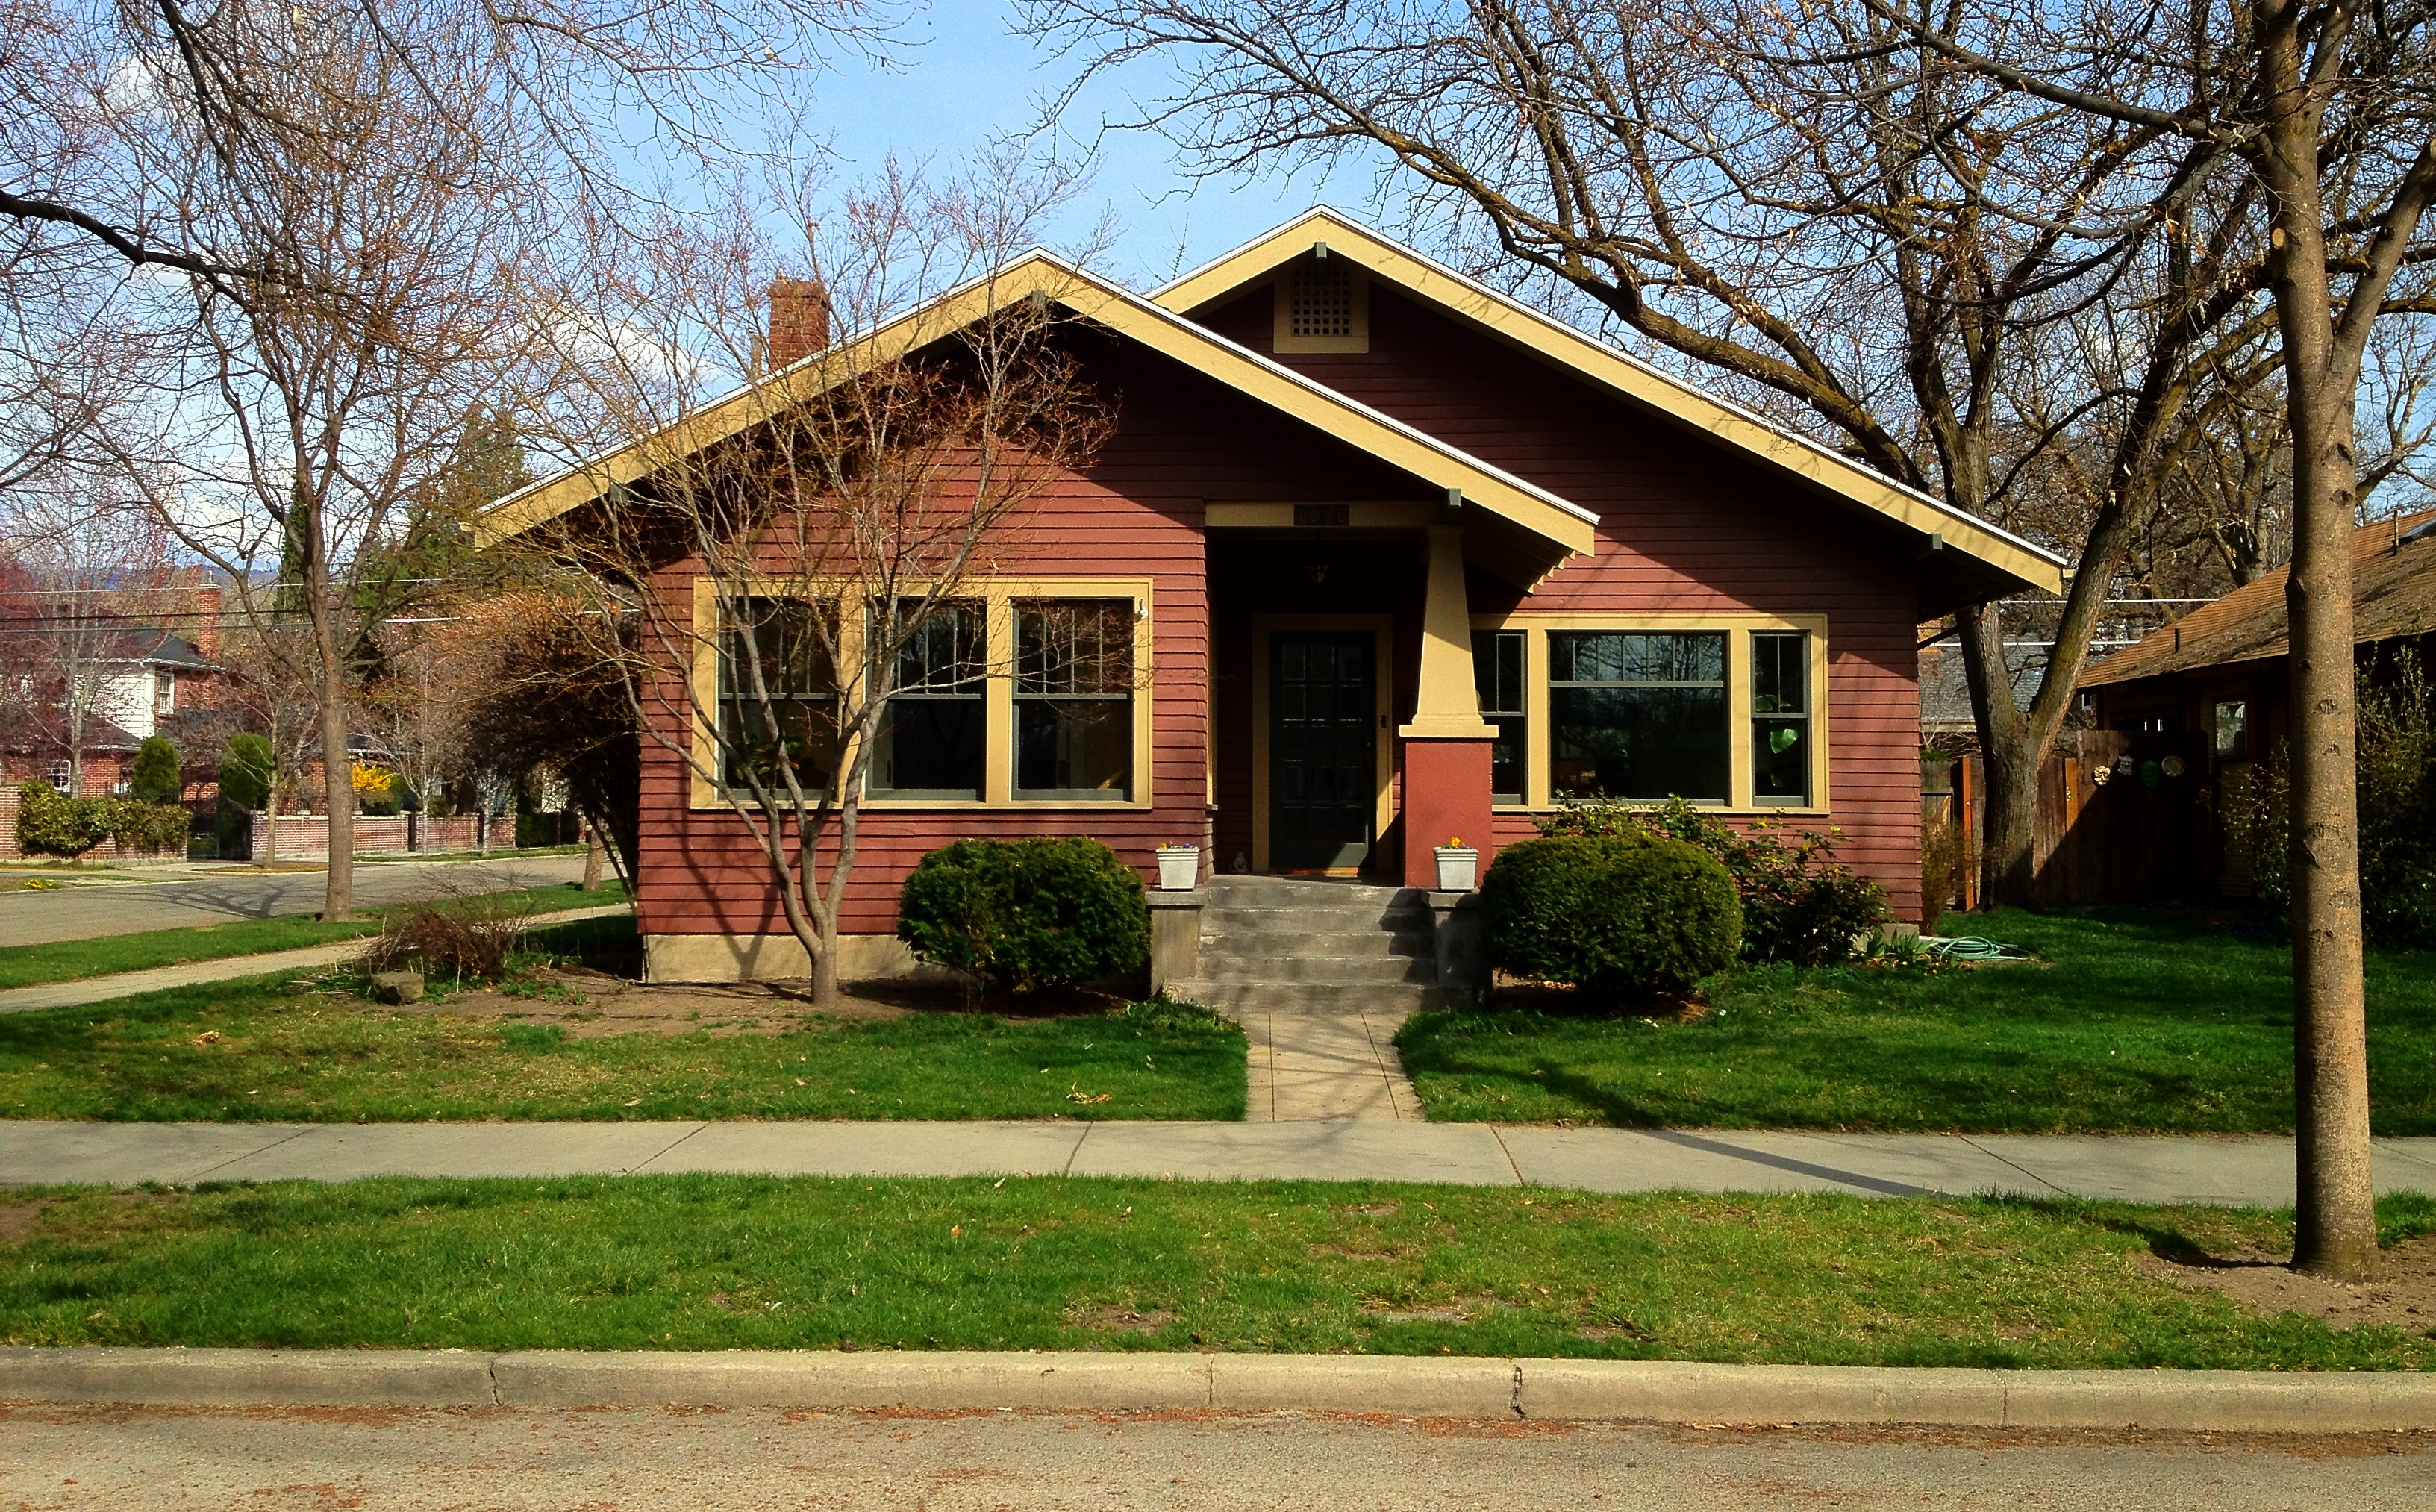 Boise home styles and architecture